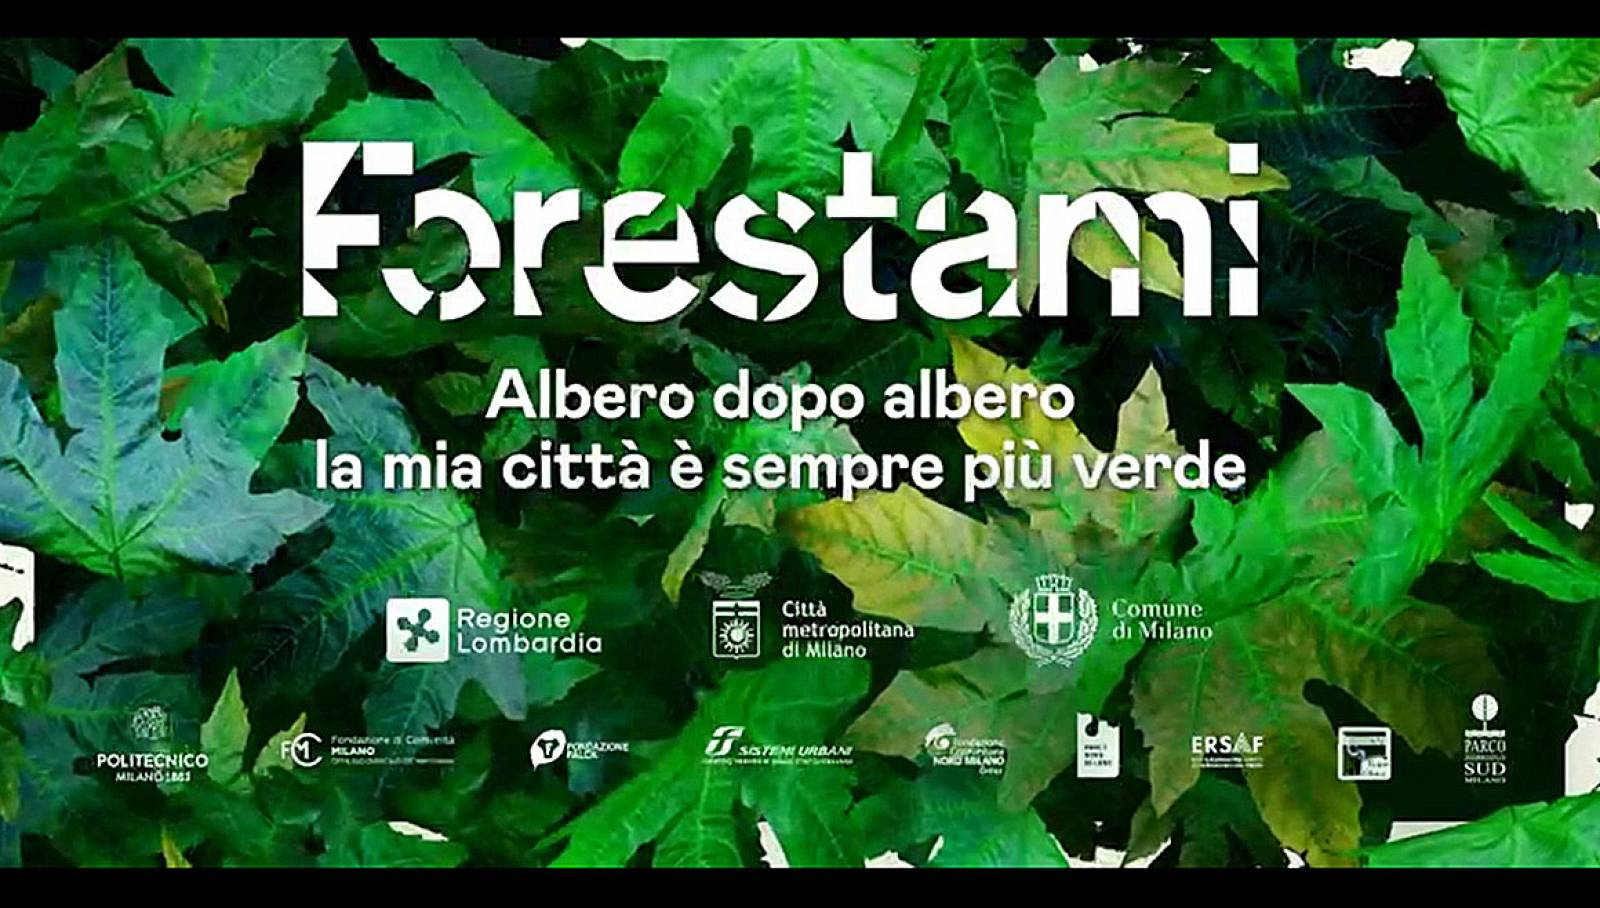 IGPDecaux Forestami Milano 2020